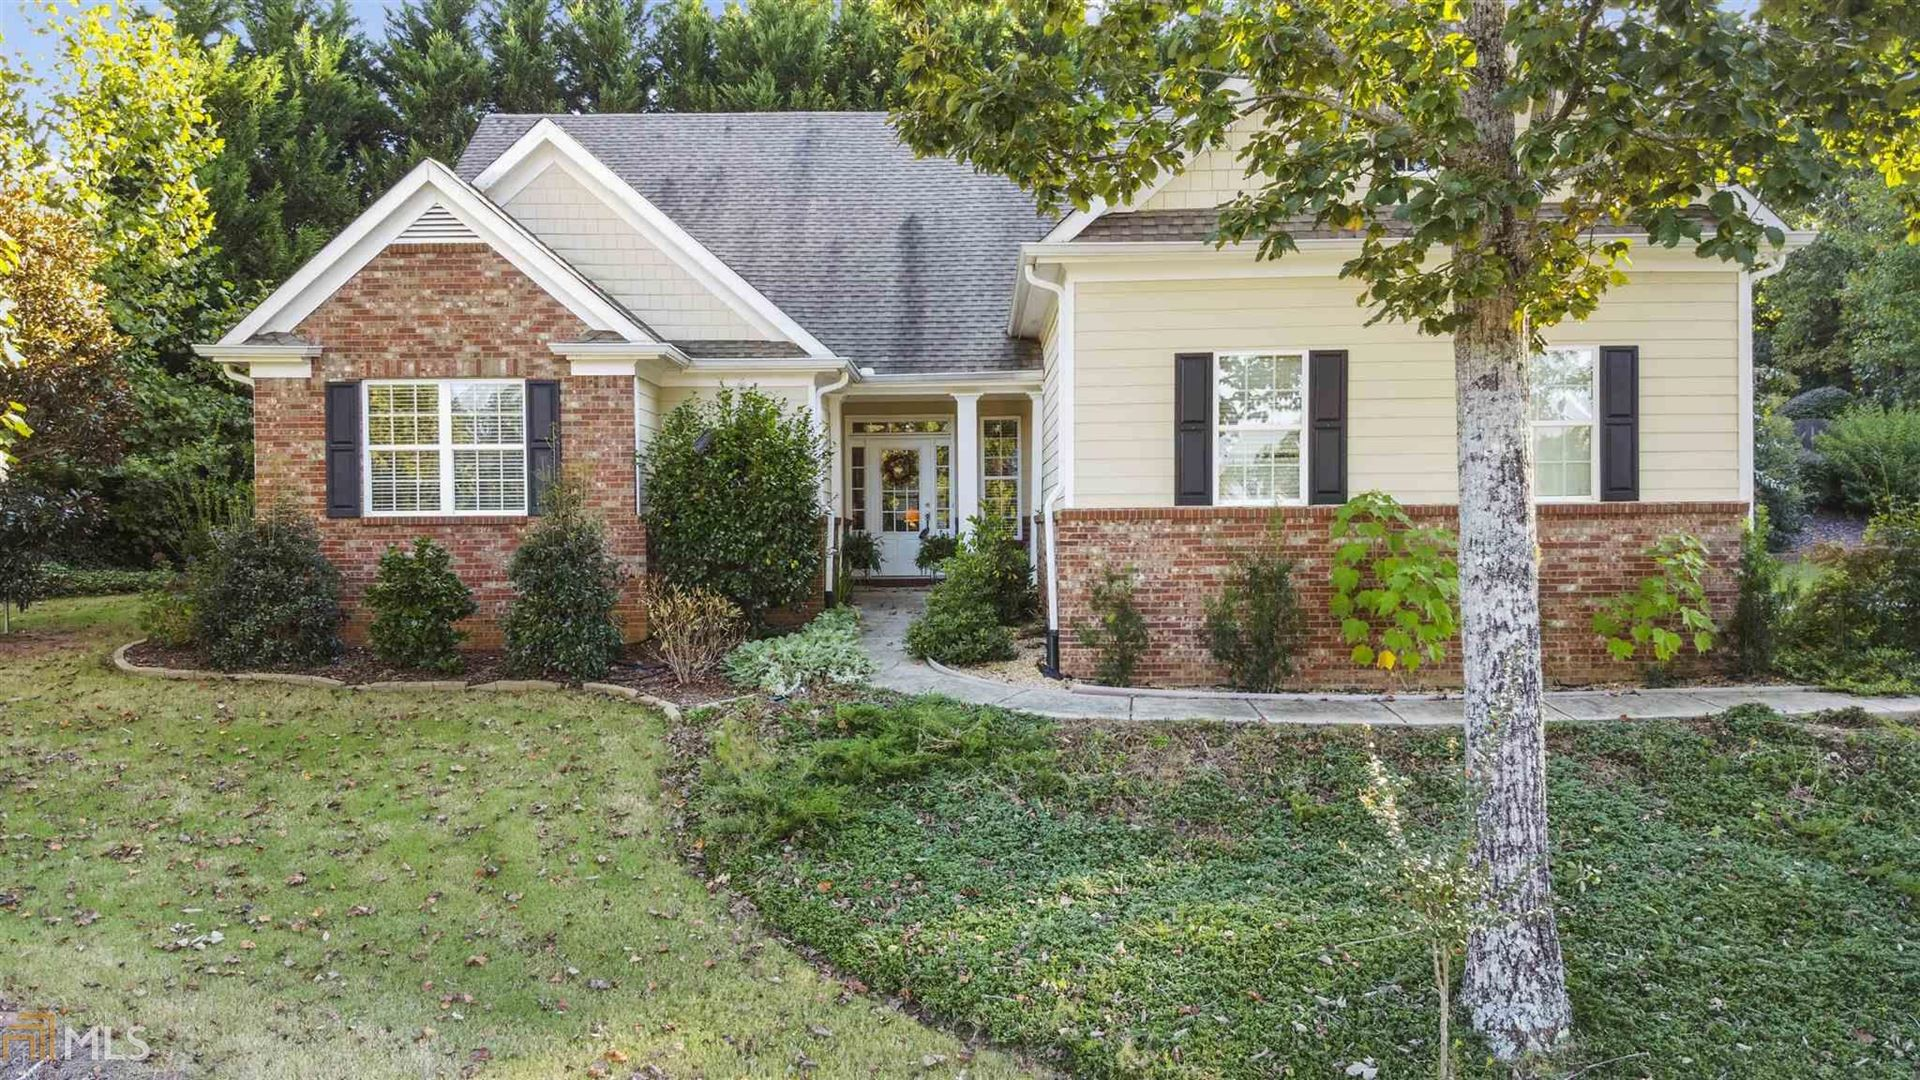 4507 North Gate Dr, Gainesville, GA 30506 - MLS#: 8868386